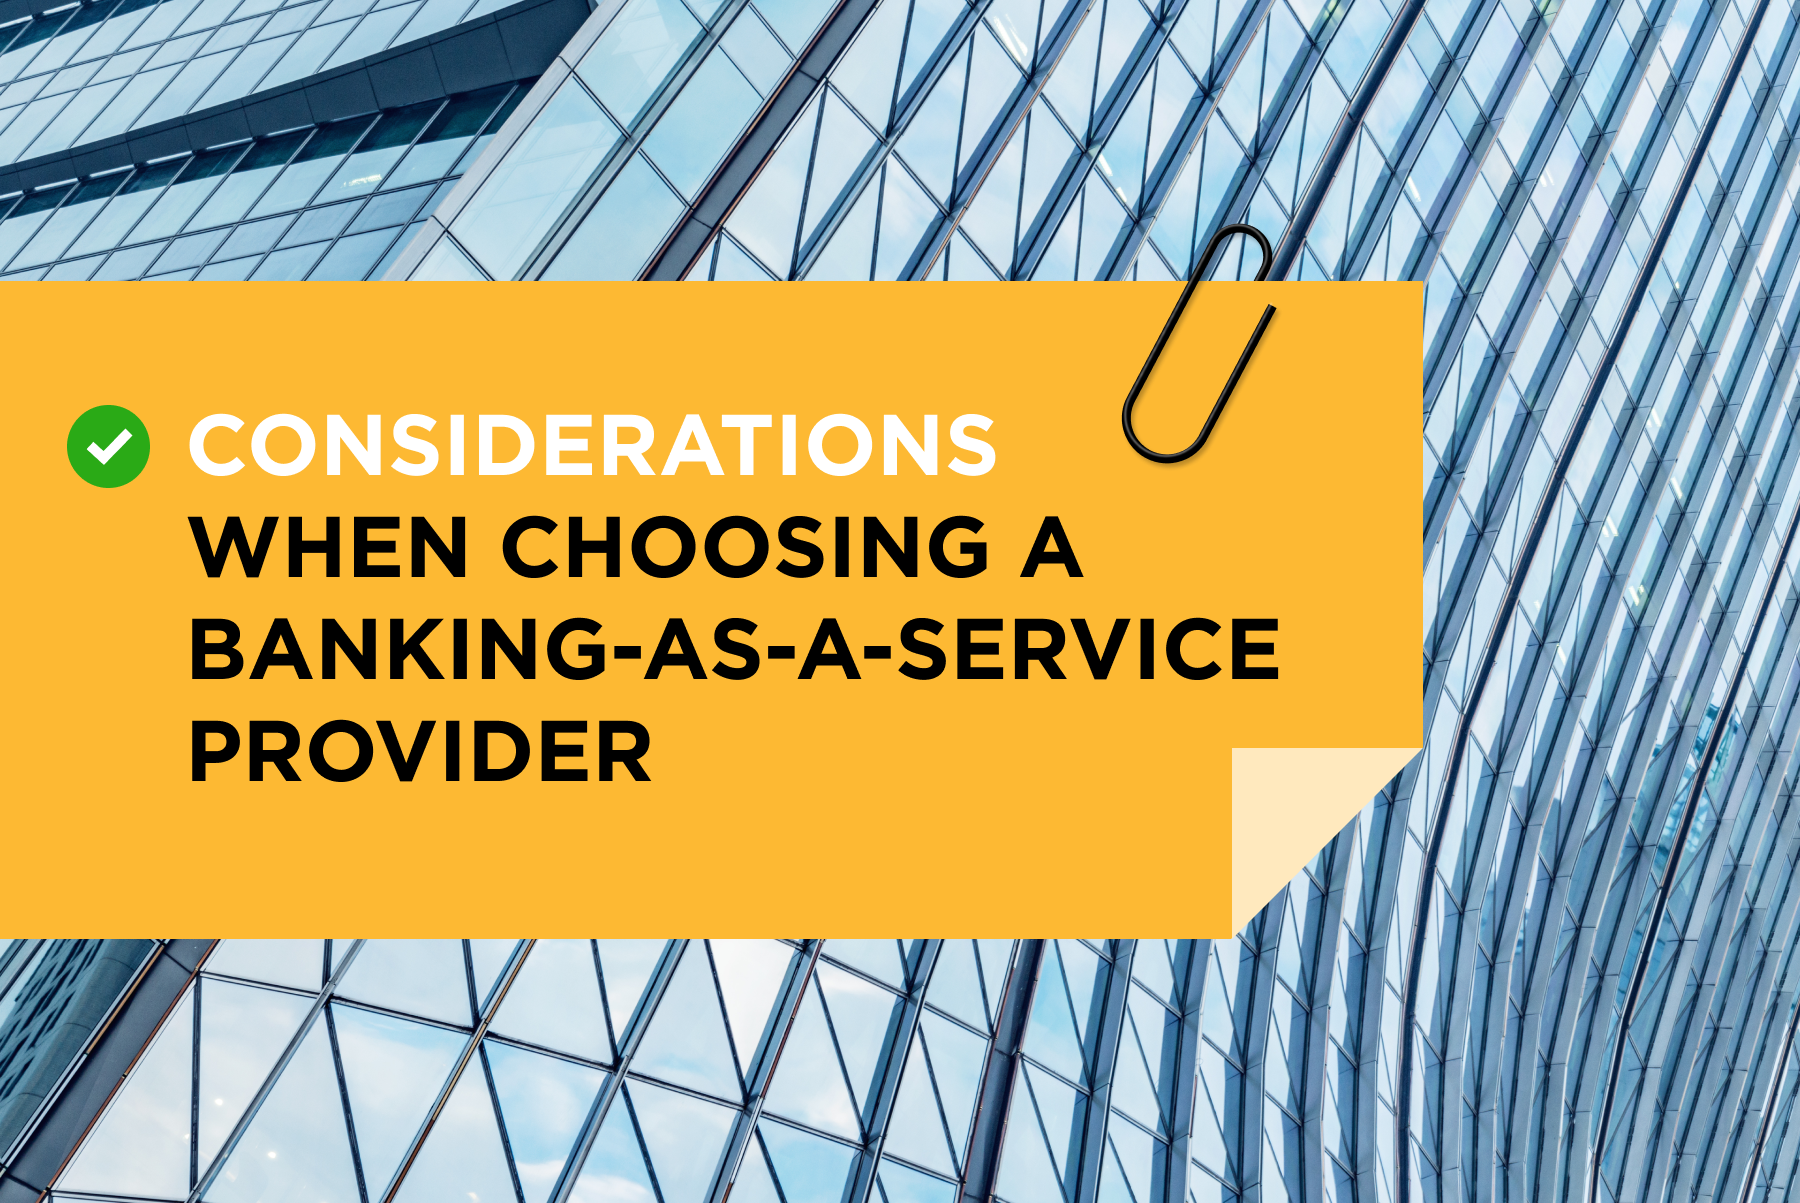 Considerations for a Baas Provider